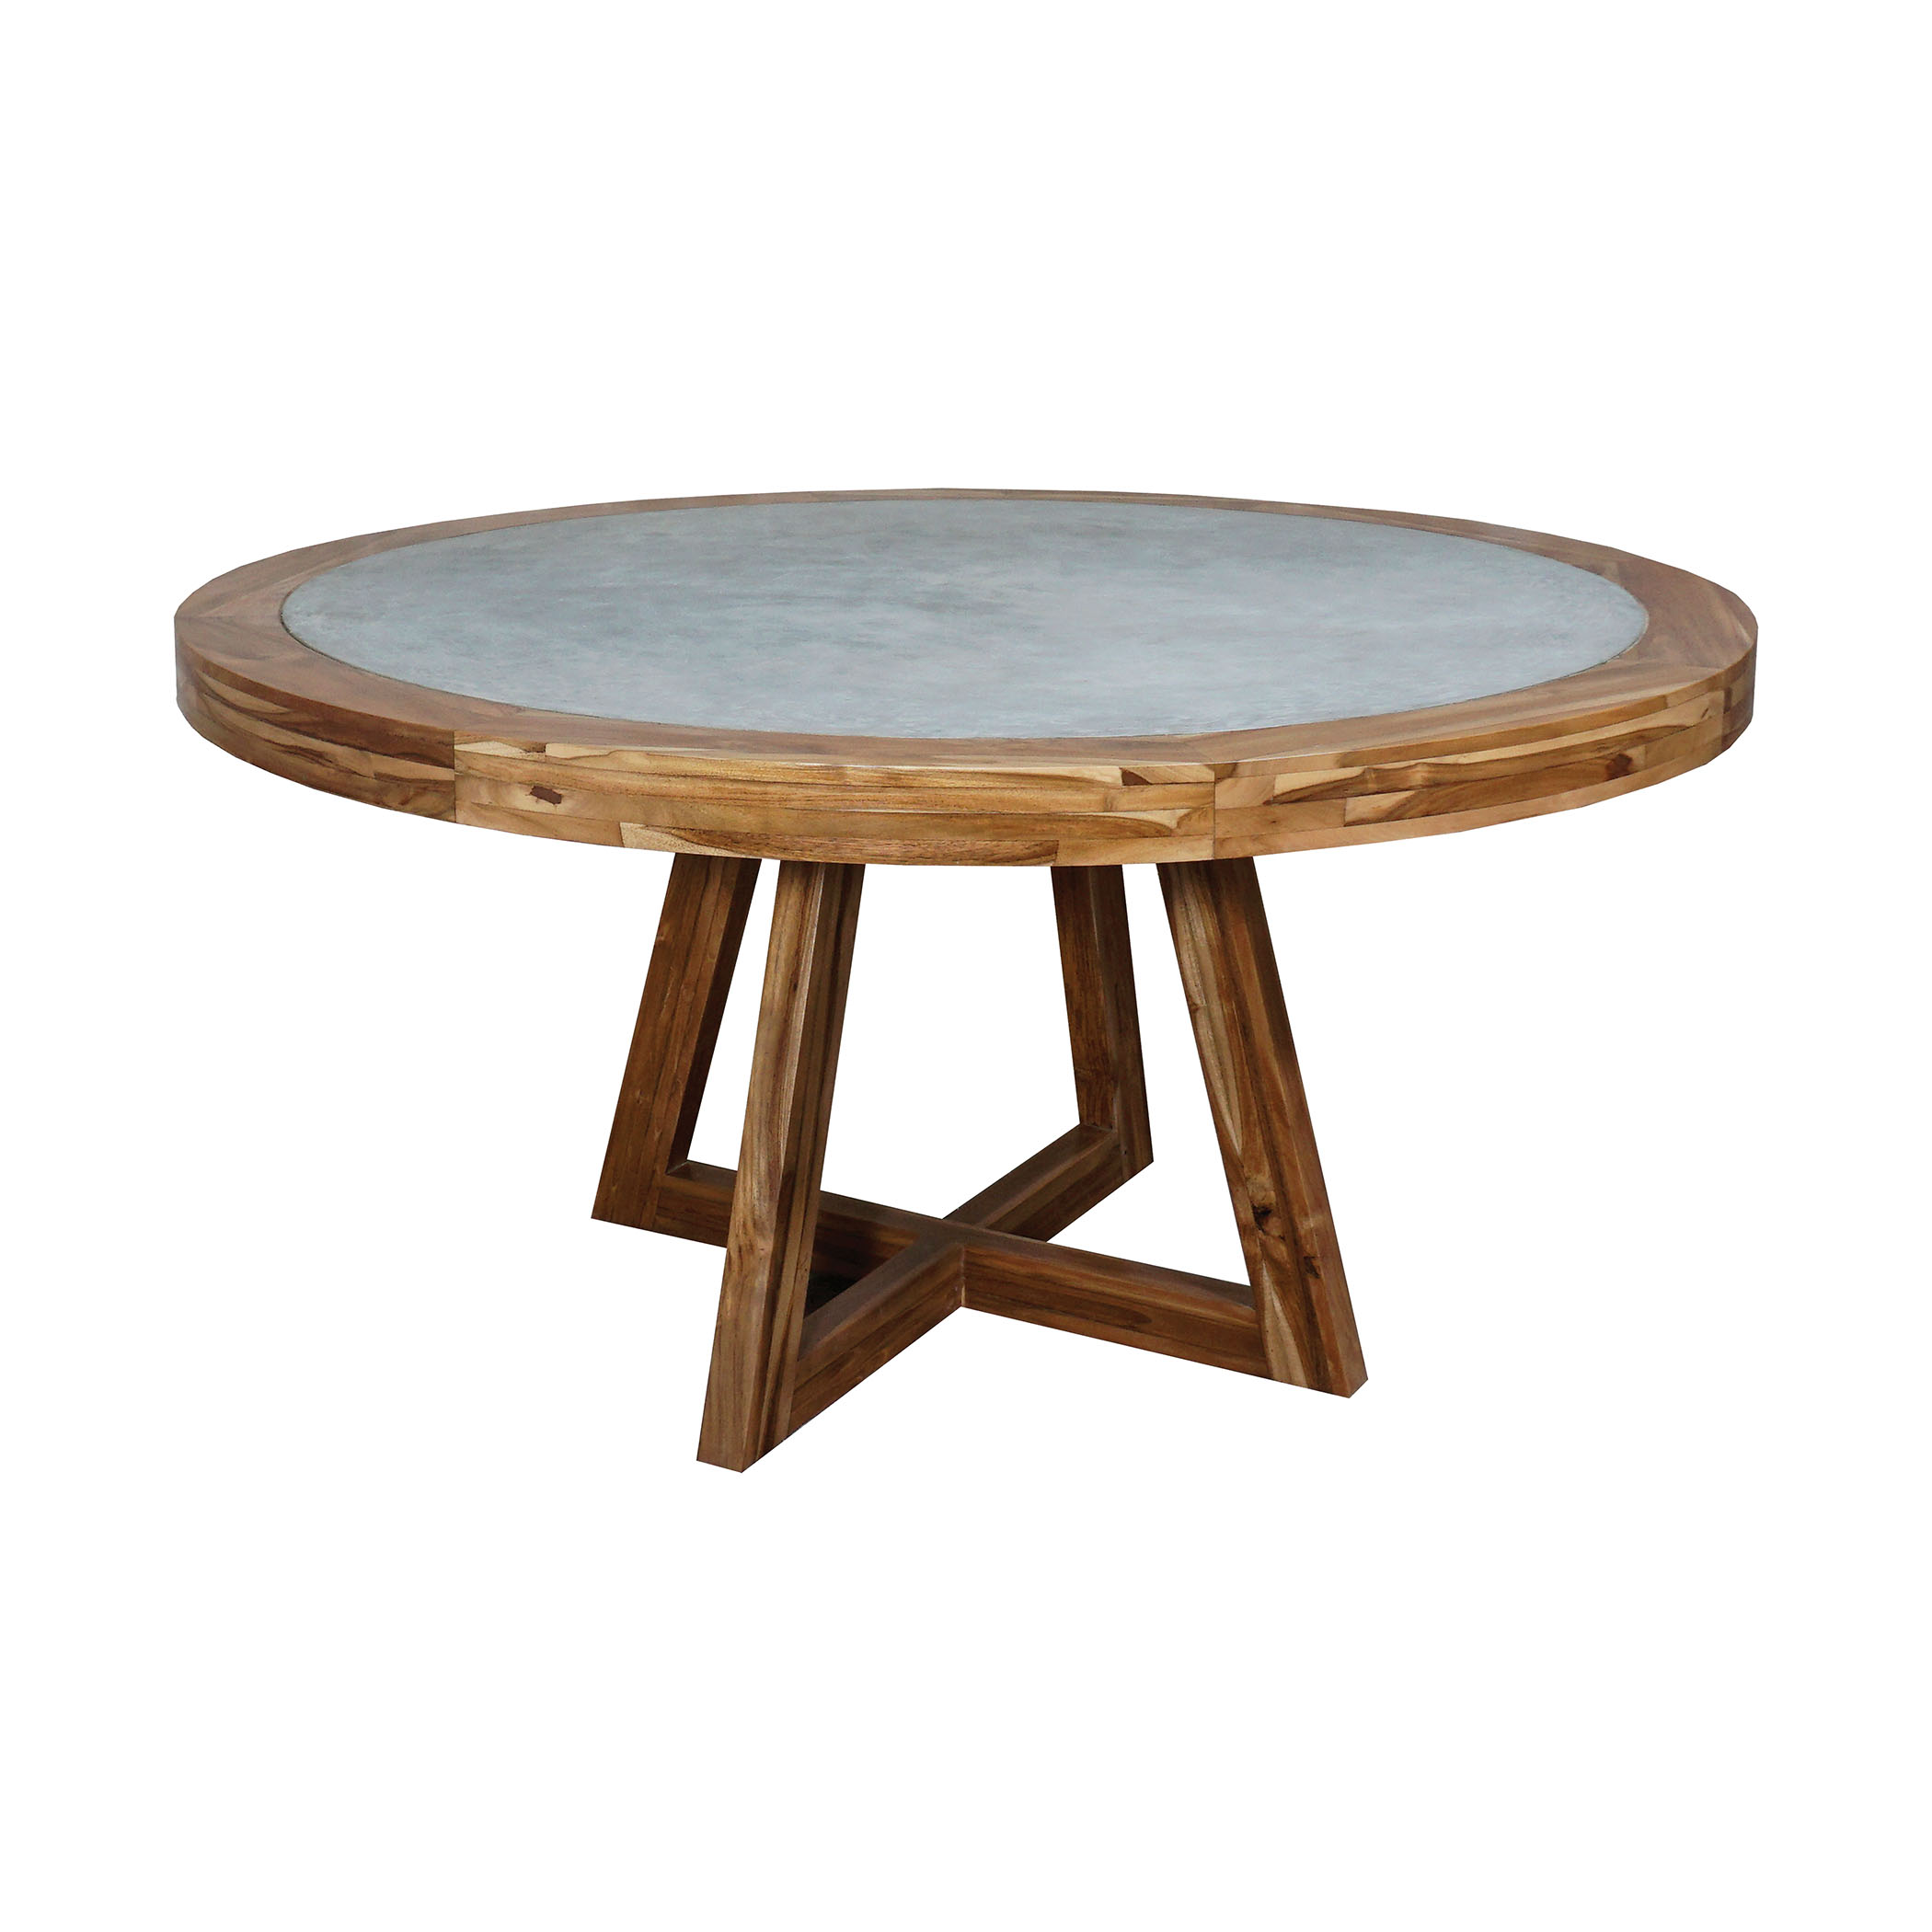 Orchard Dining Table in Teak and Concrete | Elk Home